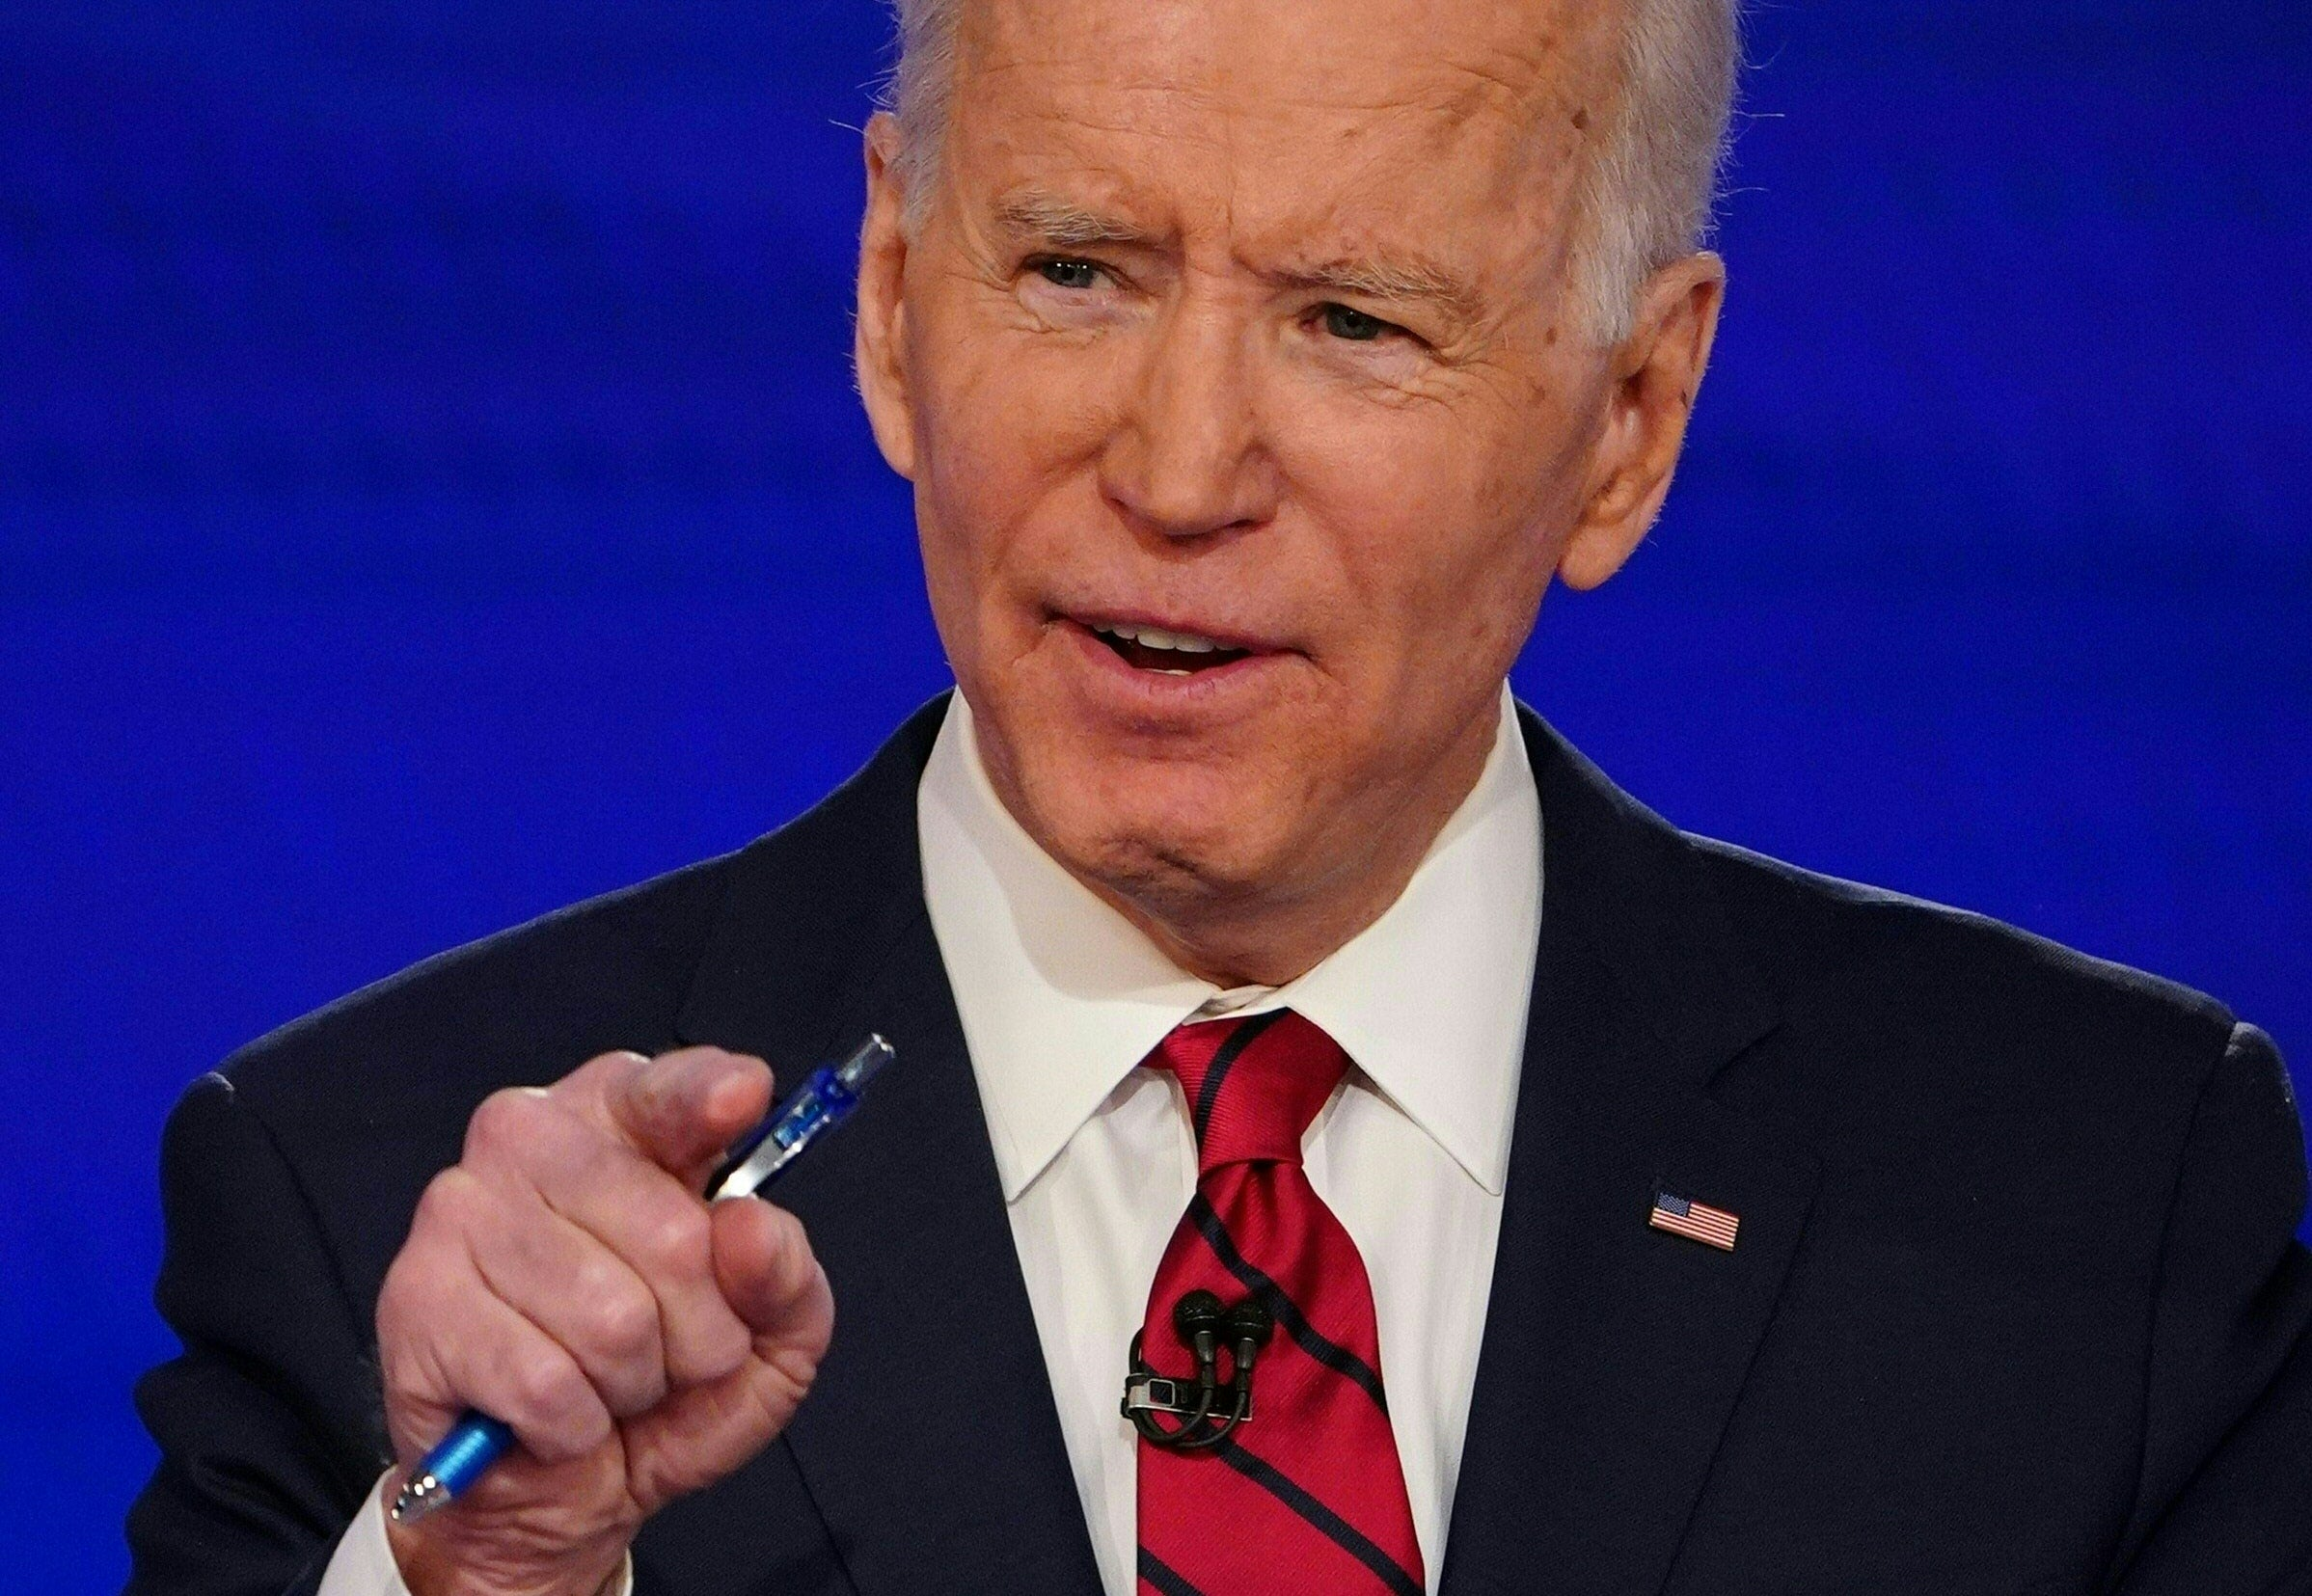 Anger from women's groups mounts as Biden remains silent on sexual assault allegation photo